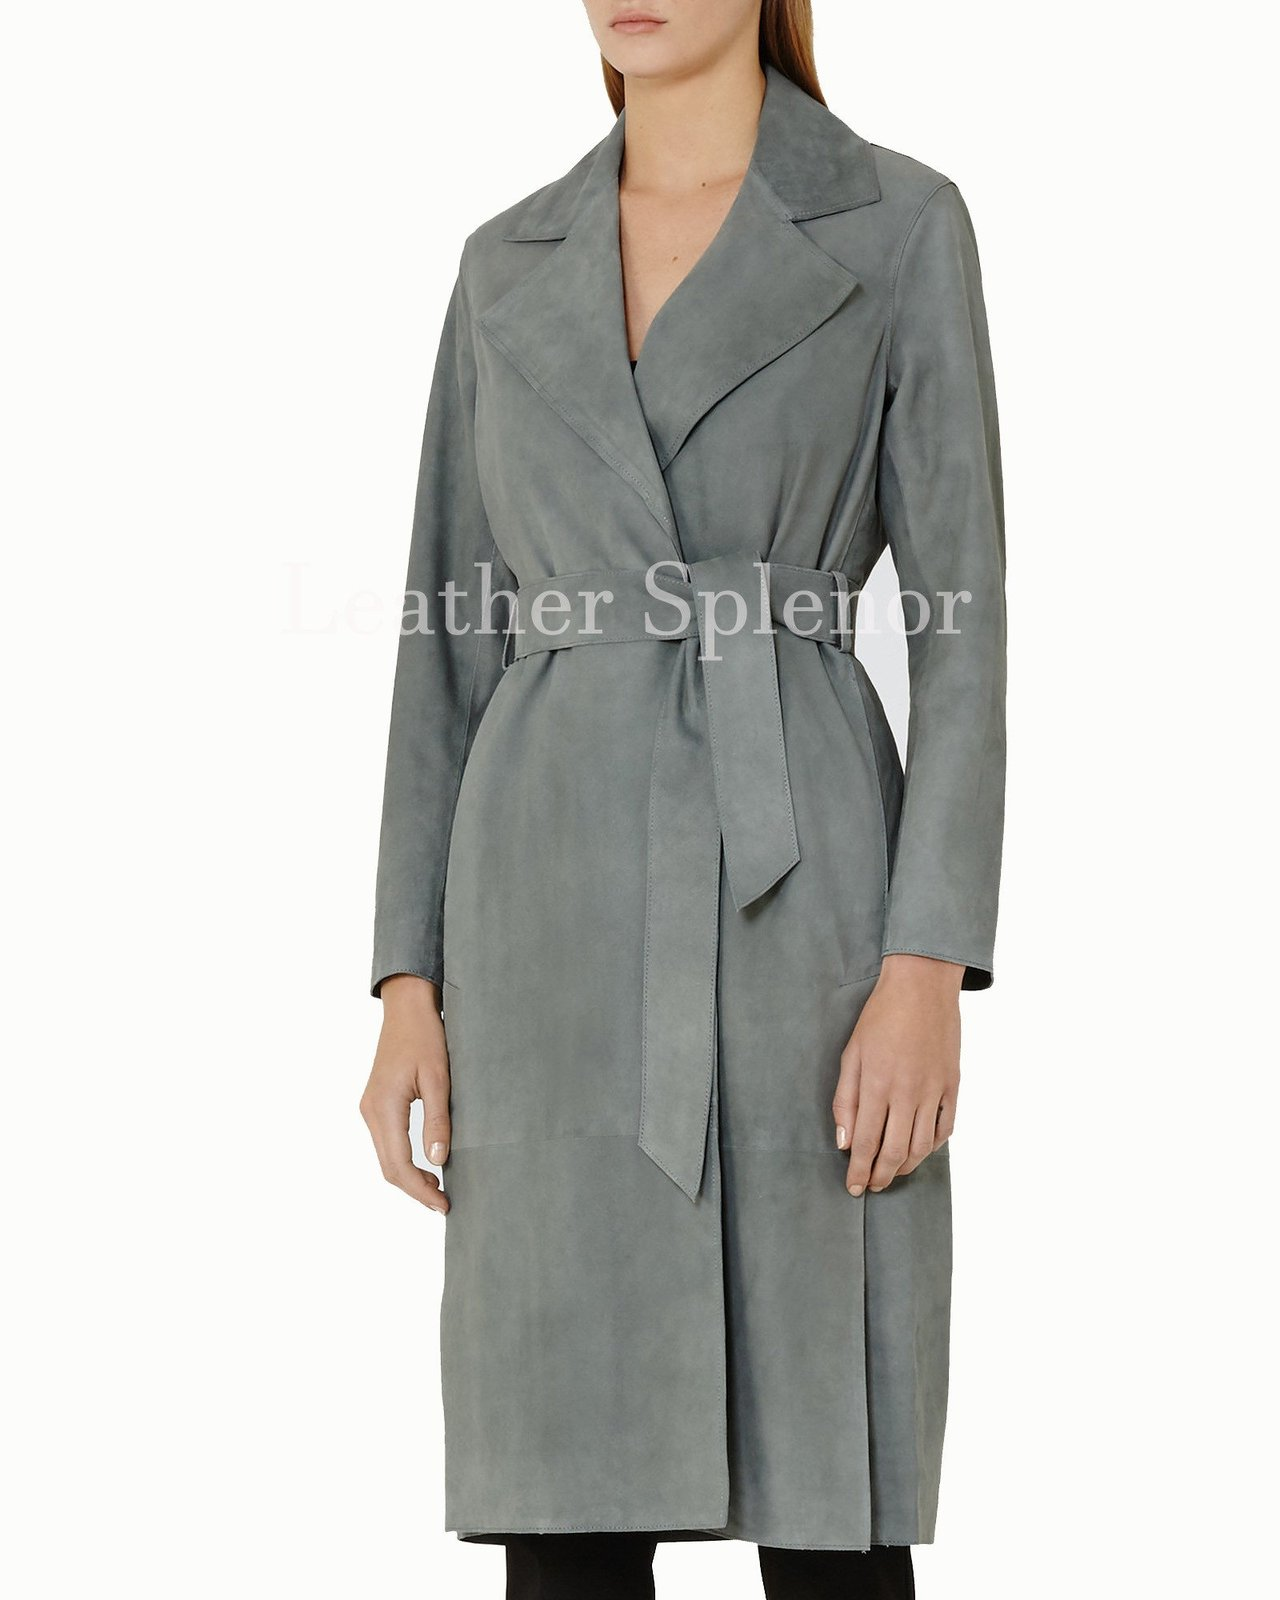 Notch Collar Women Suede Leather Trench Coat